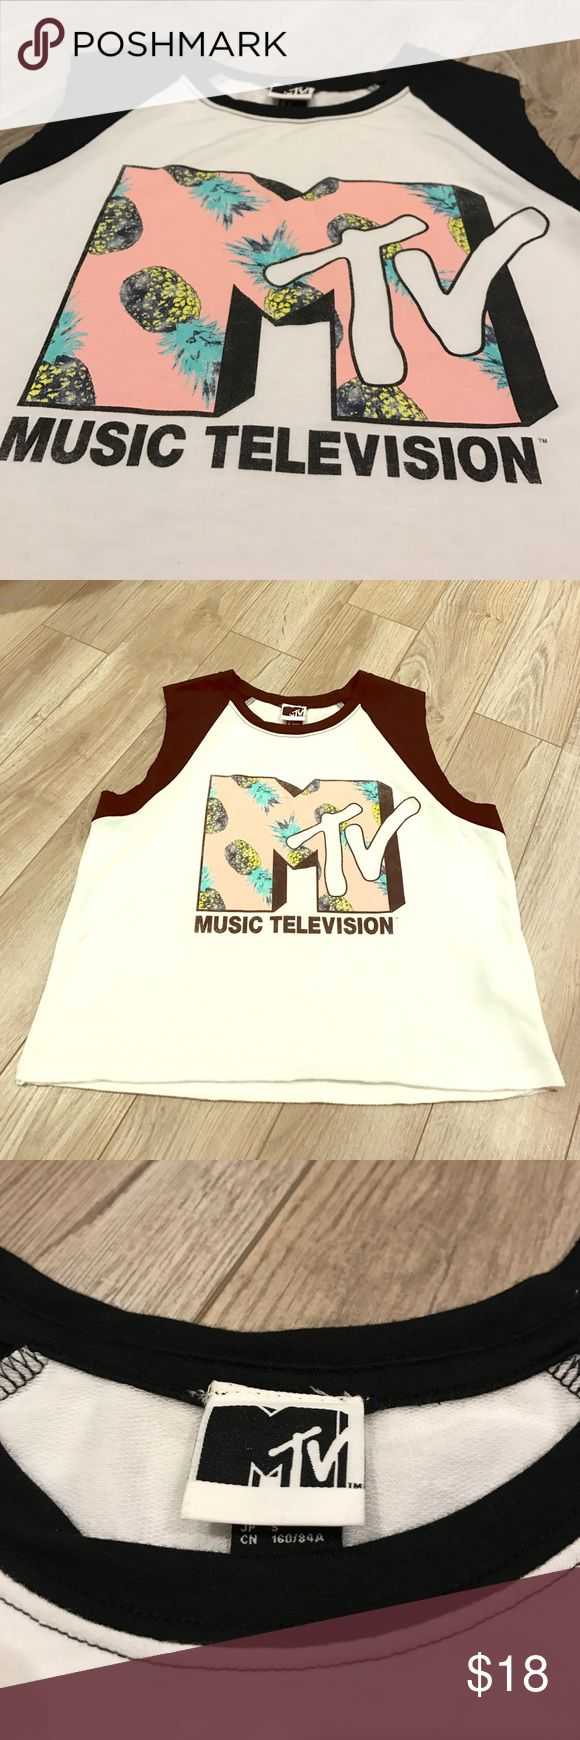 MTV | Black White Cut Off Sleeveless Crop Top EUC MTV music television black white pink pineapple crop top. Perfect for spring break! MTV Tops Tank Tops